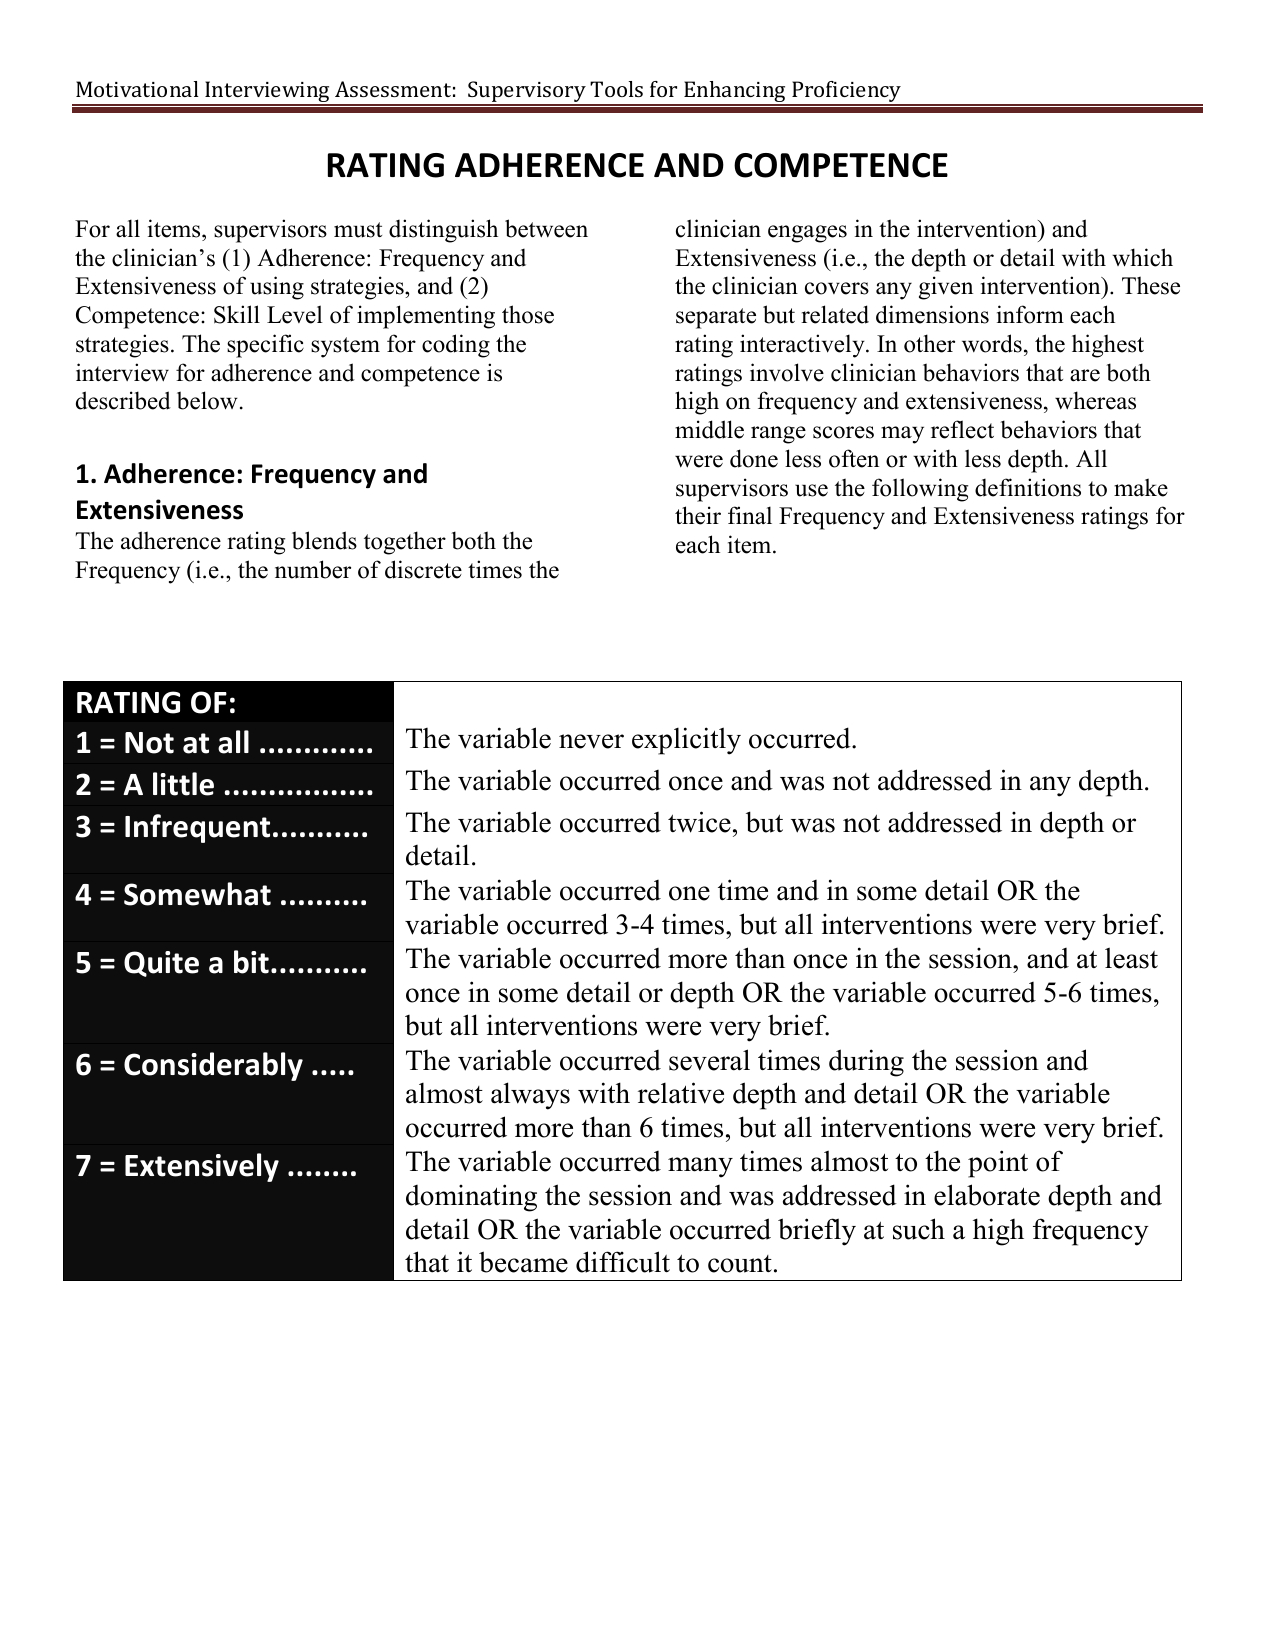 Inst 18 R2 Motivational Interviewing Rating Adherence Worksheet For Motivational Interviewing Worksheets